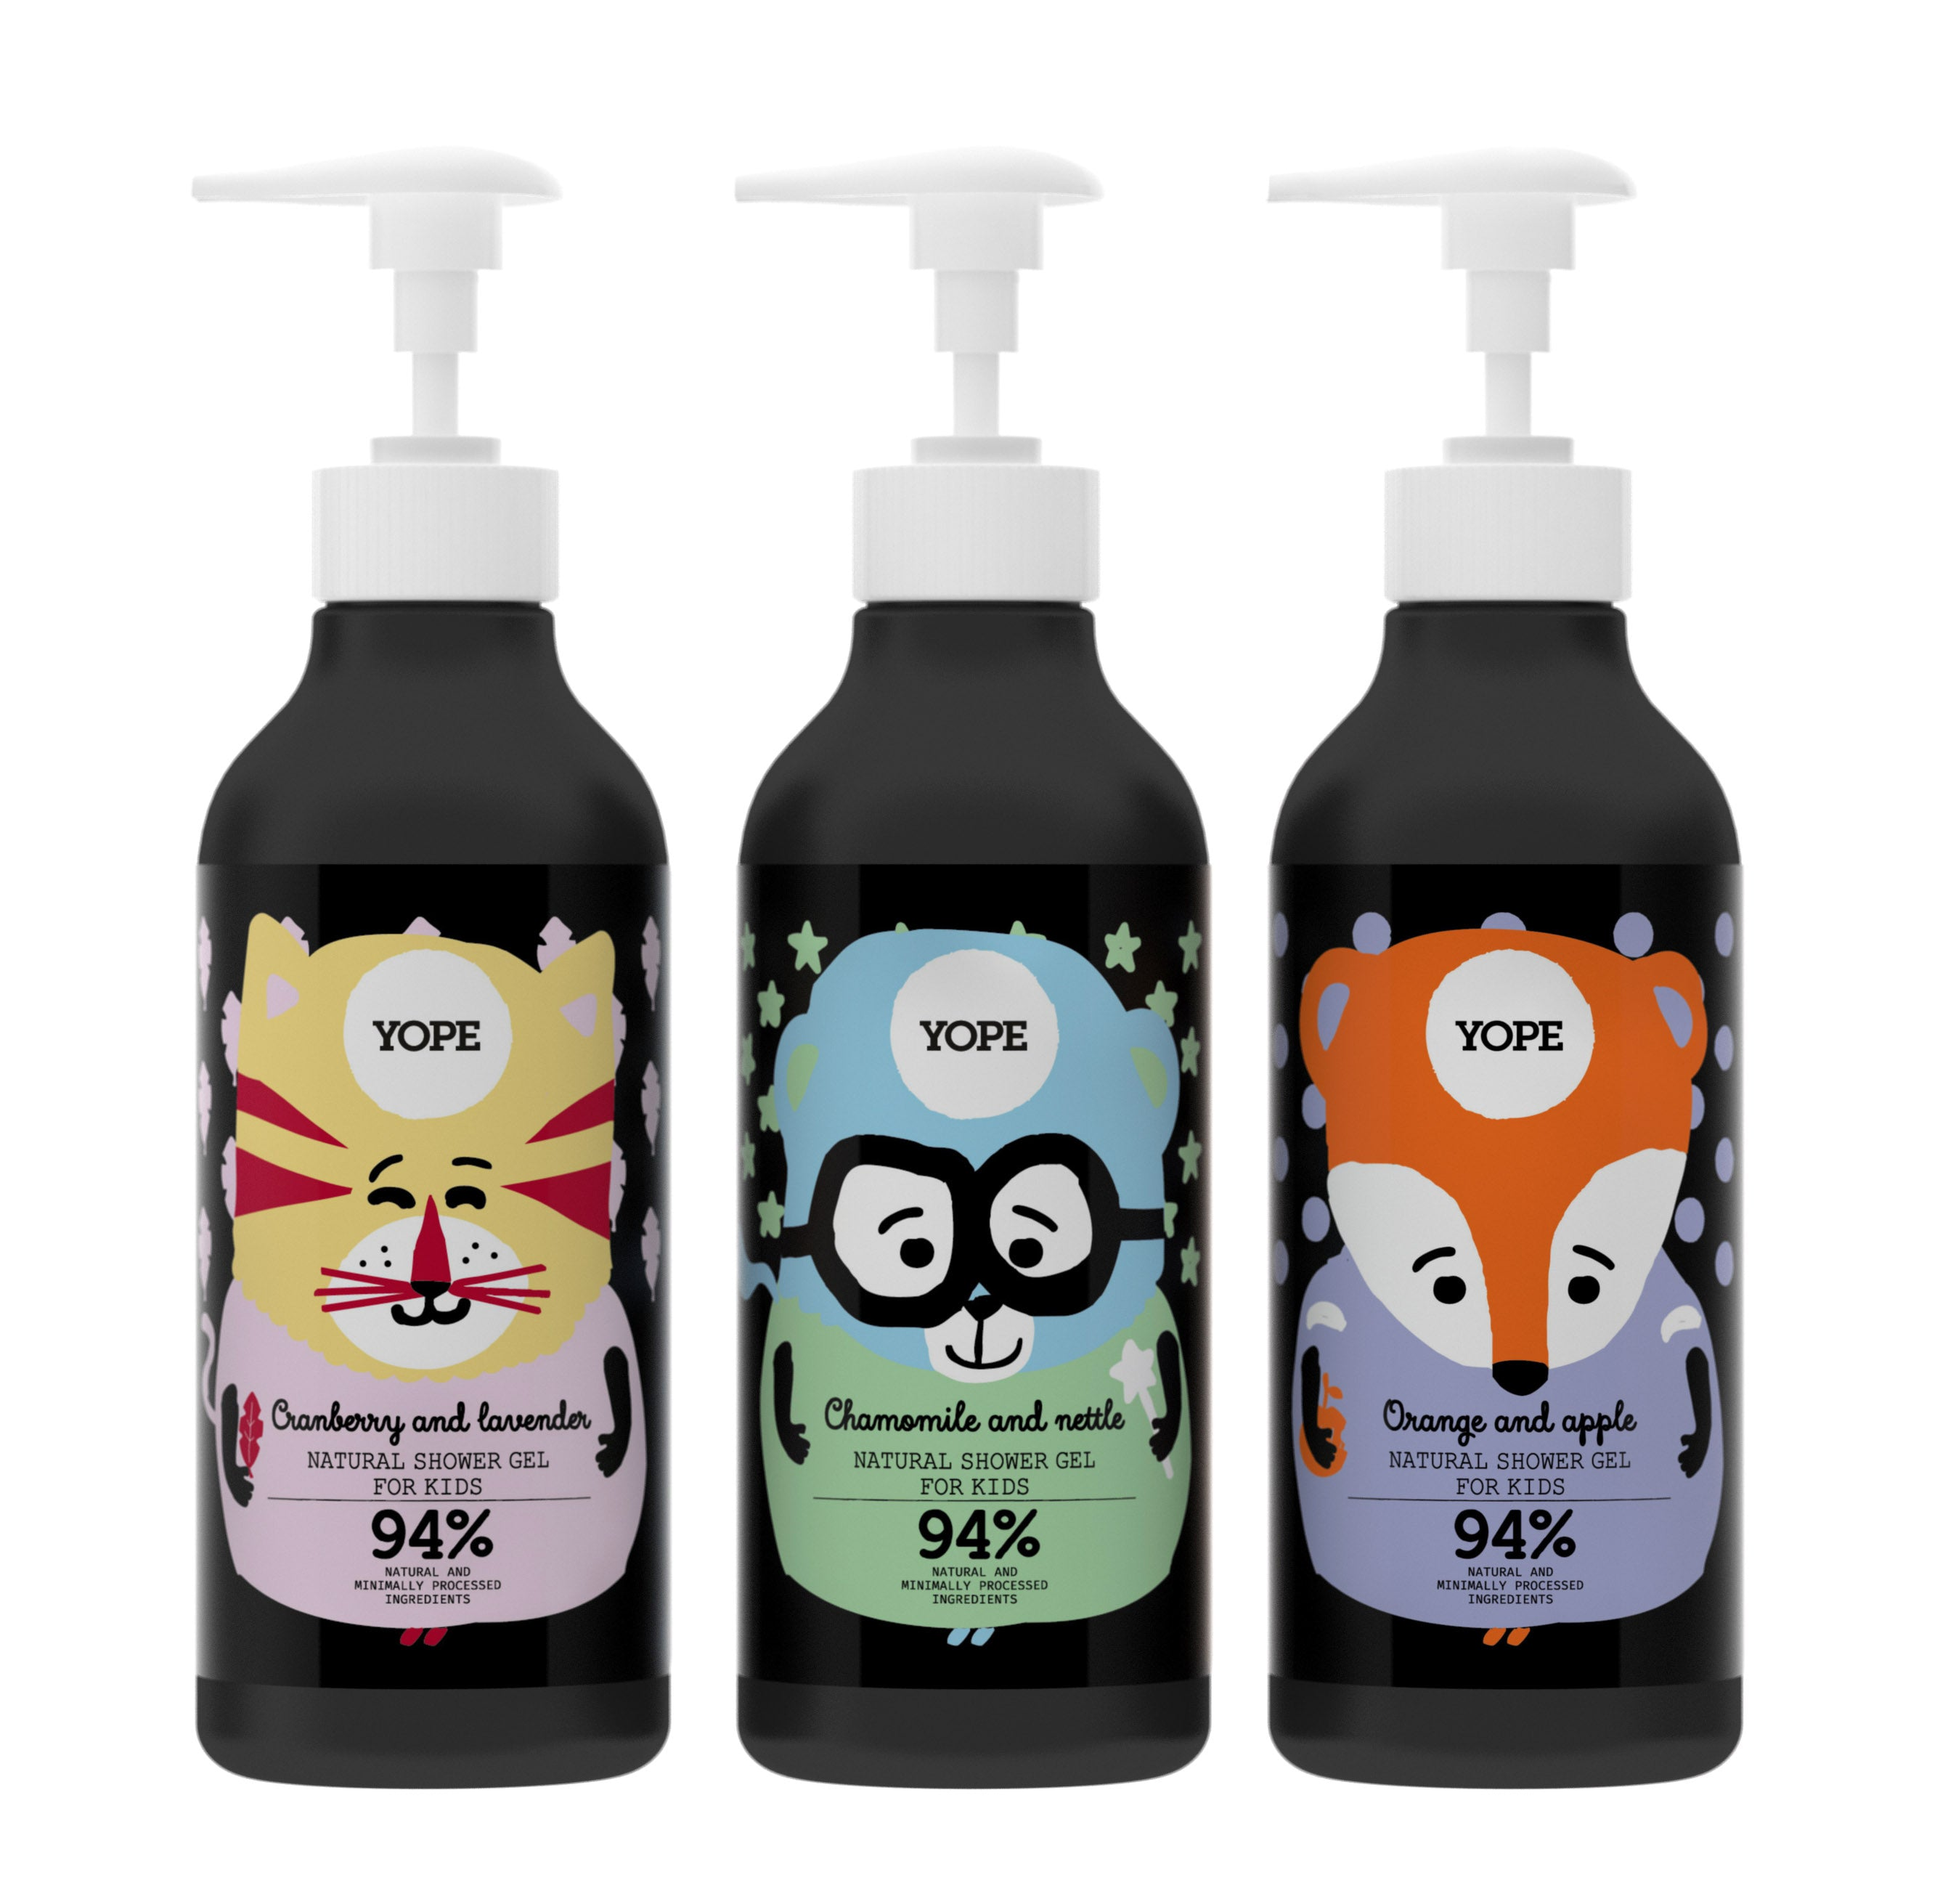 YOPE Shower Gel for Kids Orange & Apple / YOPE 兒童香橙丶蘋果沐浴露 - Xavi Soap